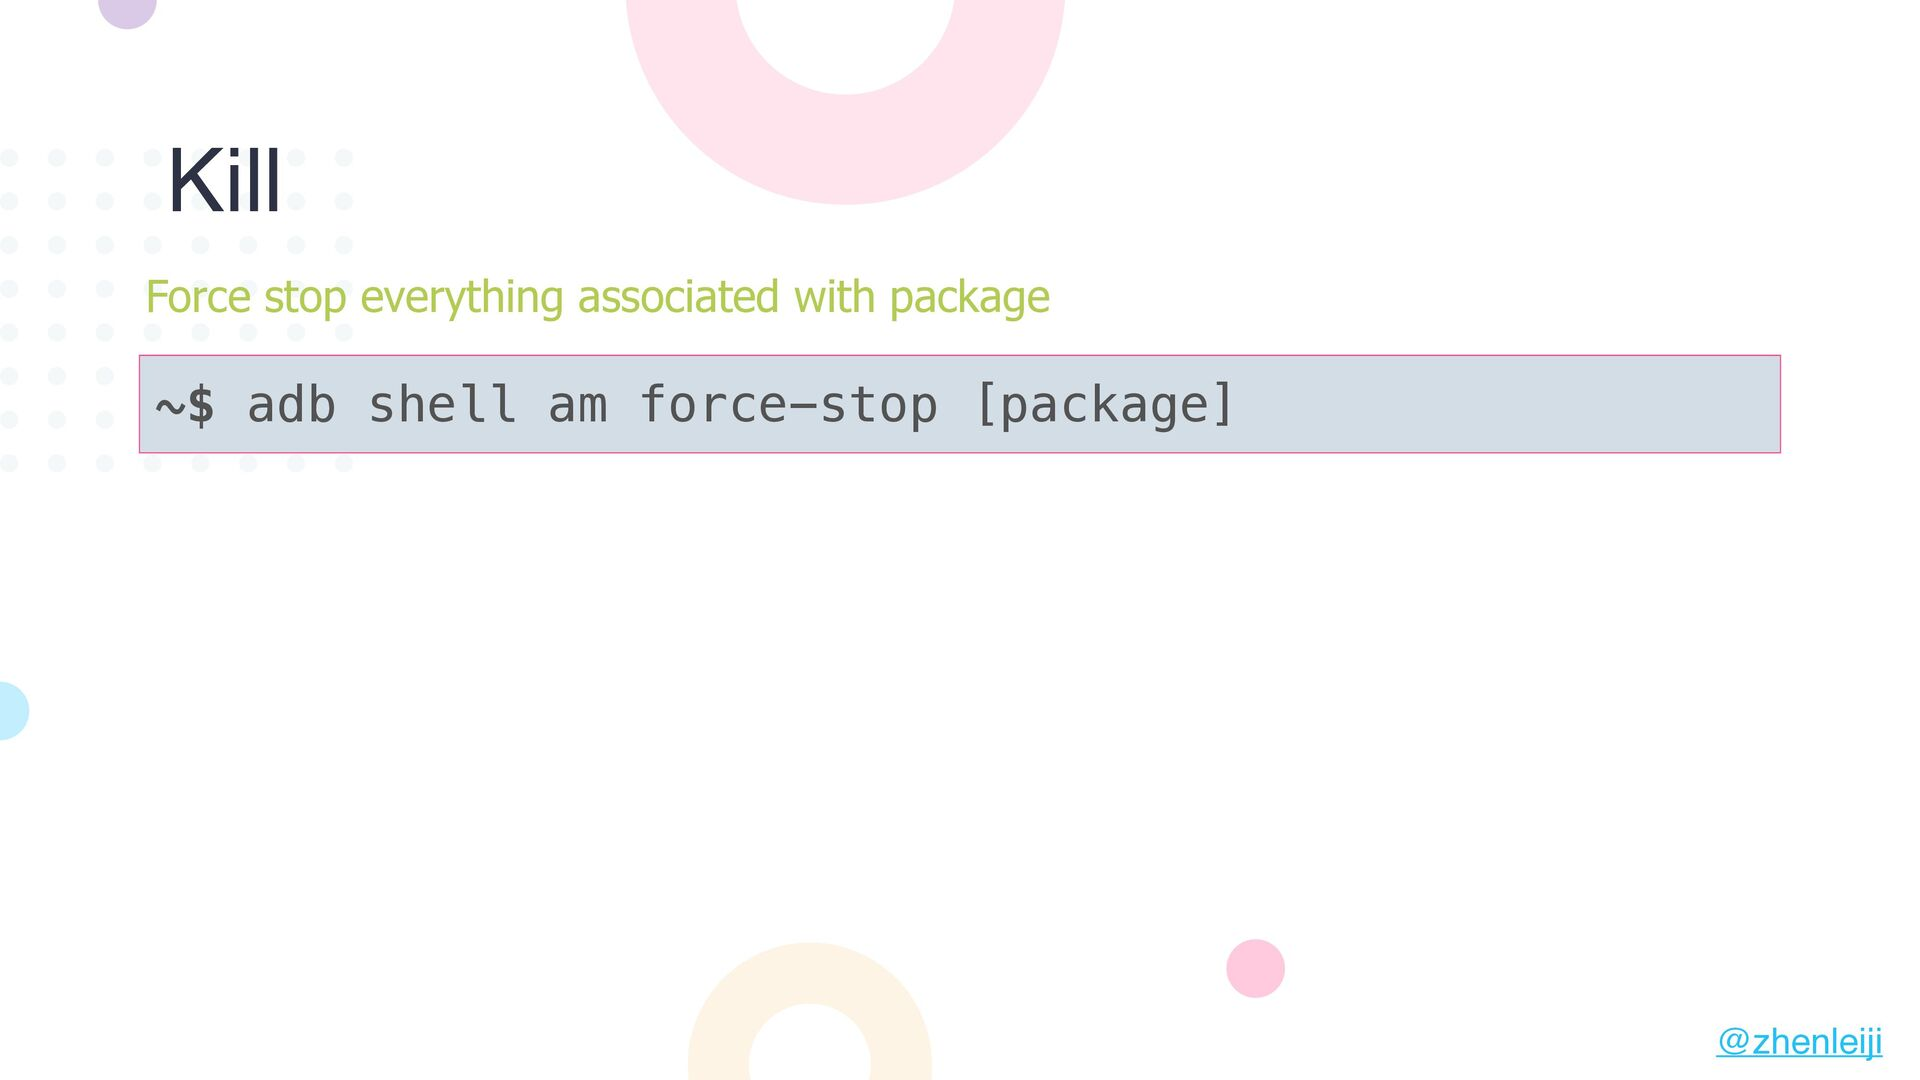 ~$ adb shell am force-stop [package] Force stop...